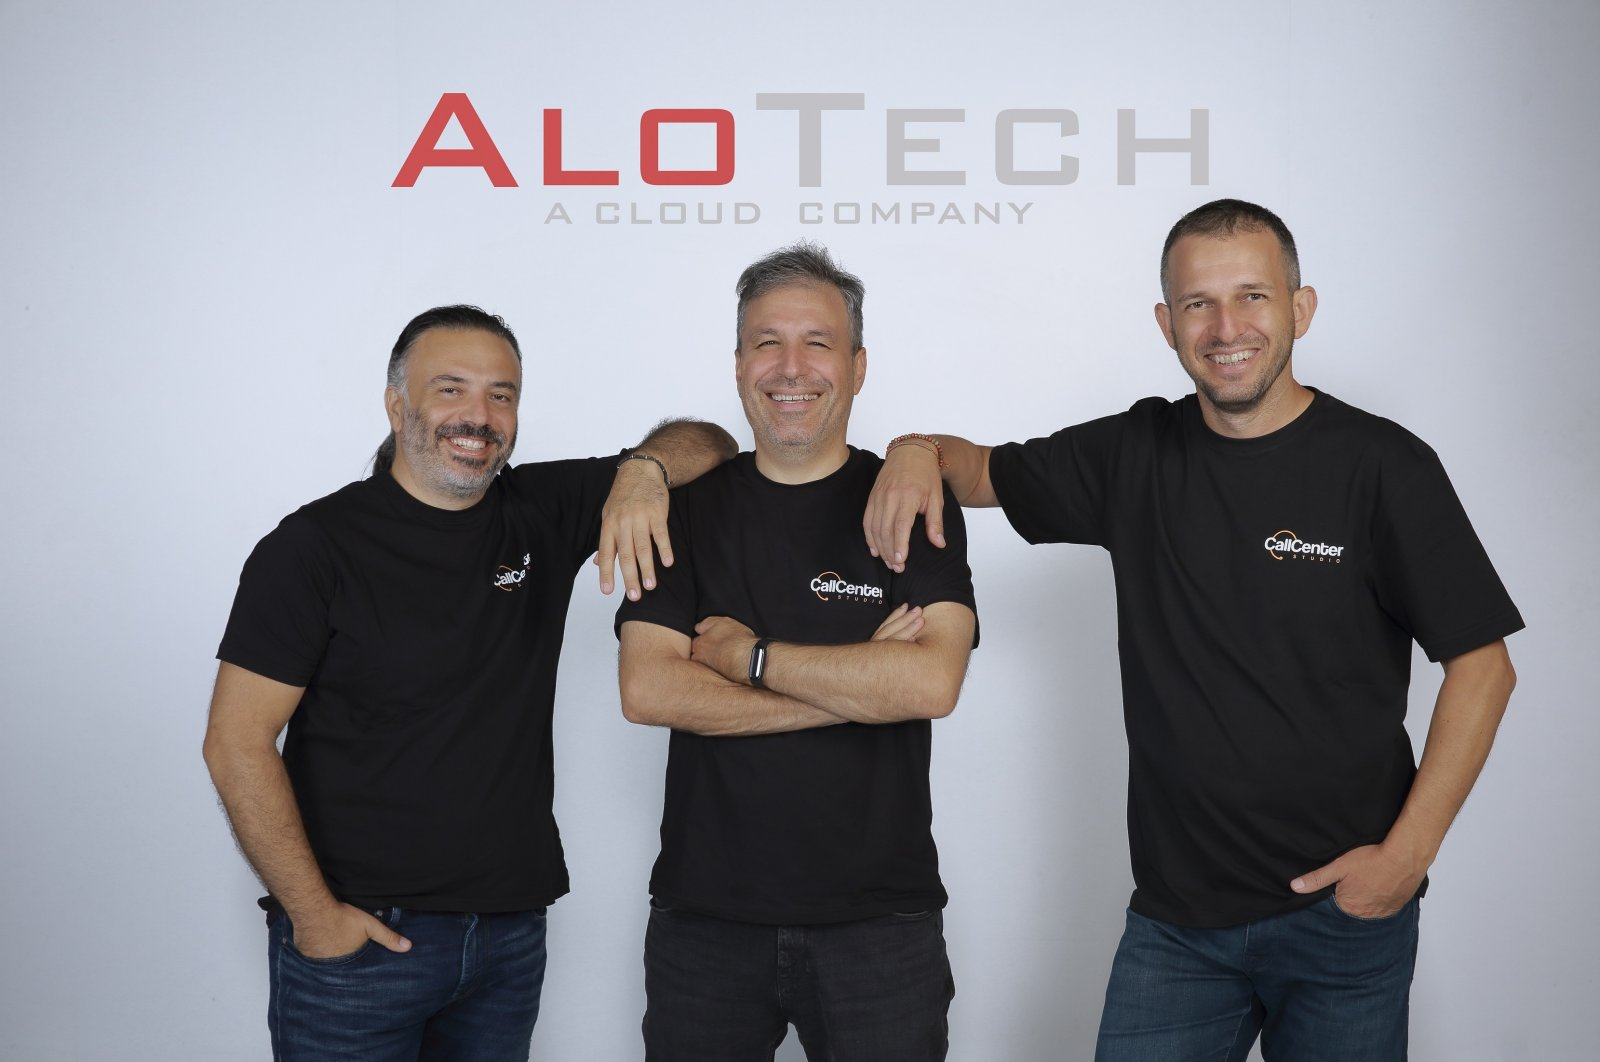 From left to right, AloTech founders Idris Avcı, Cenk Soyak and Korhan Erçin.